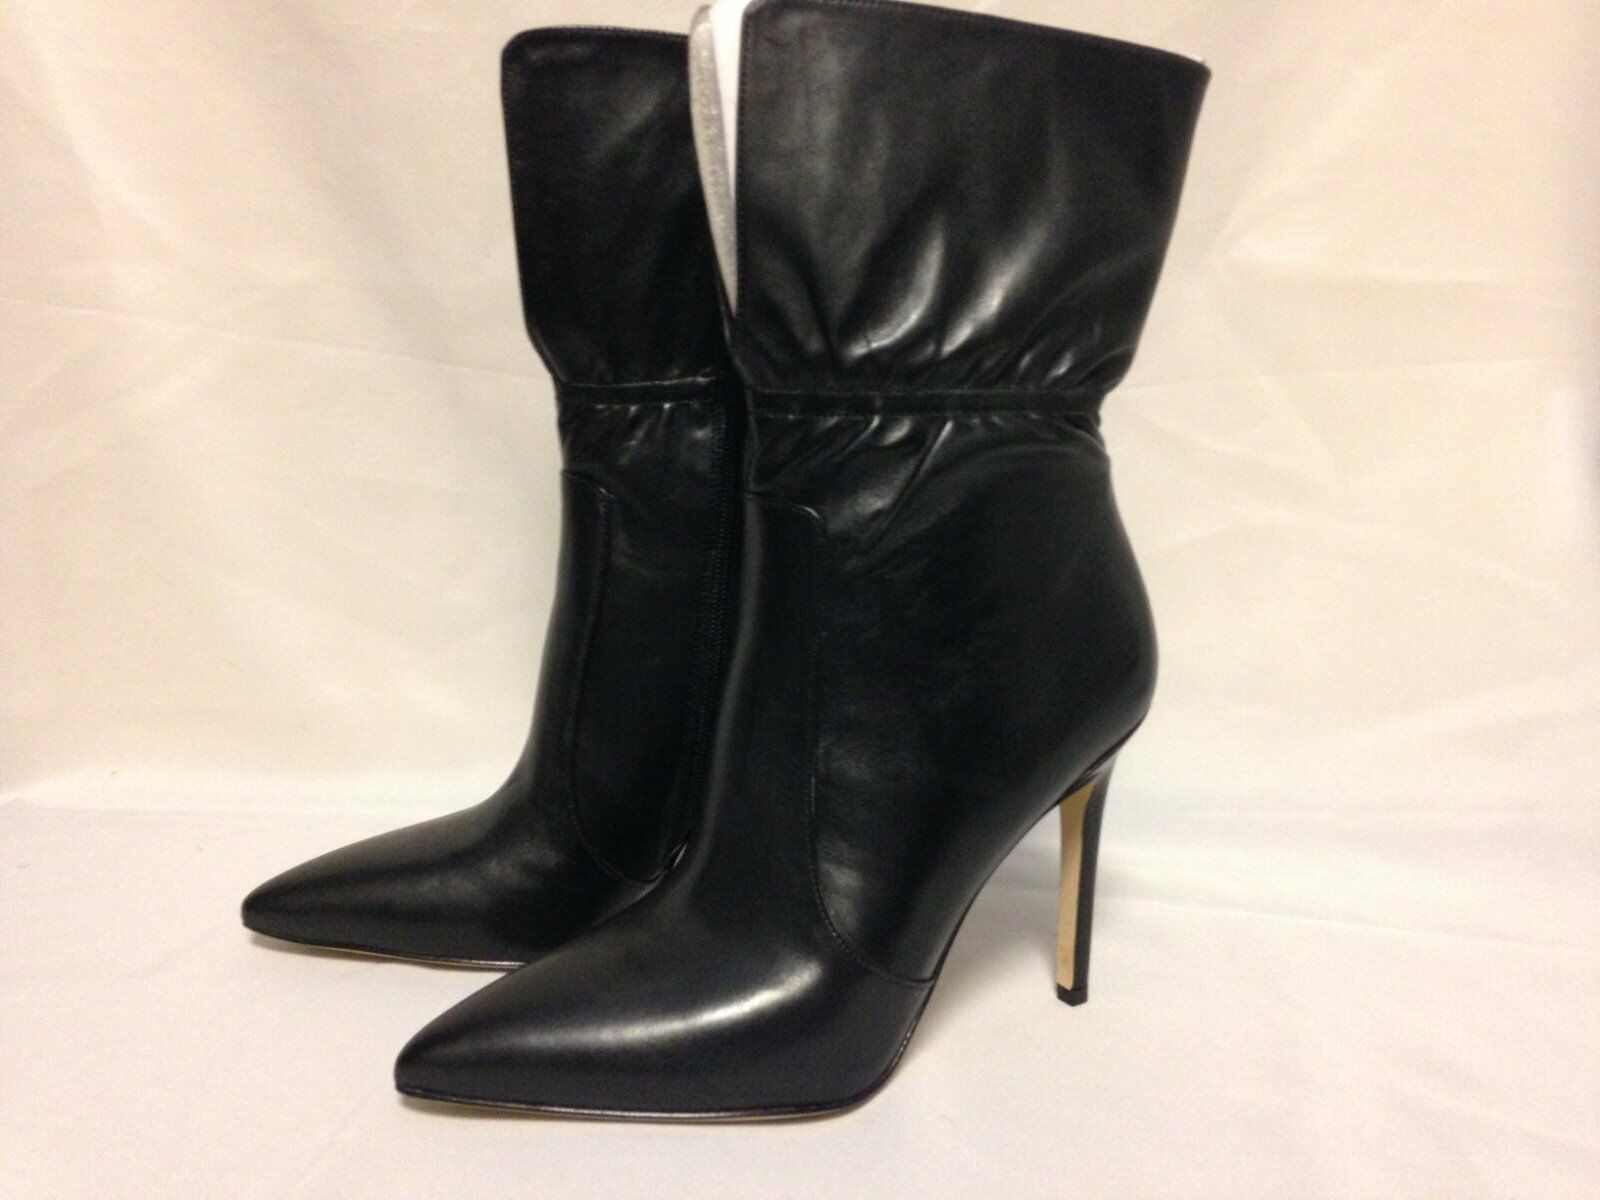 Via Spiga Felienne Ankle Boot 7.5 M Black Leather New with Box